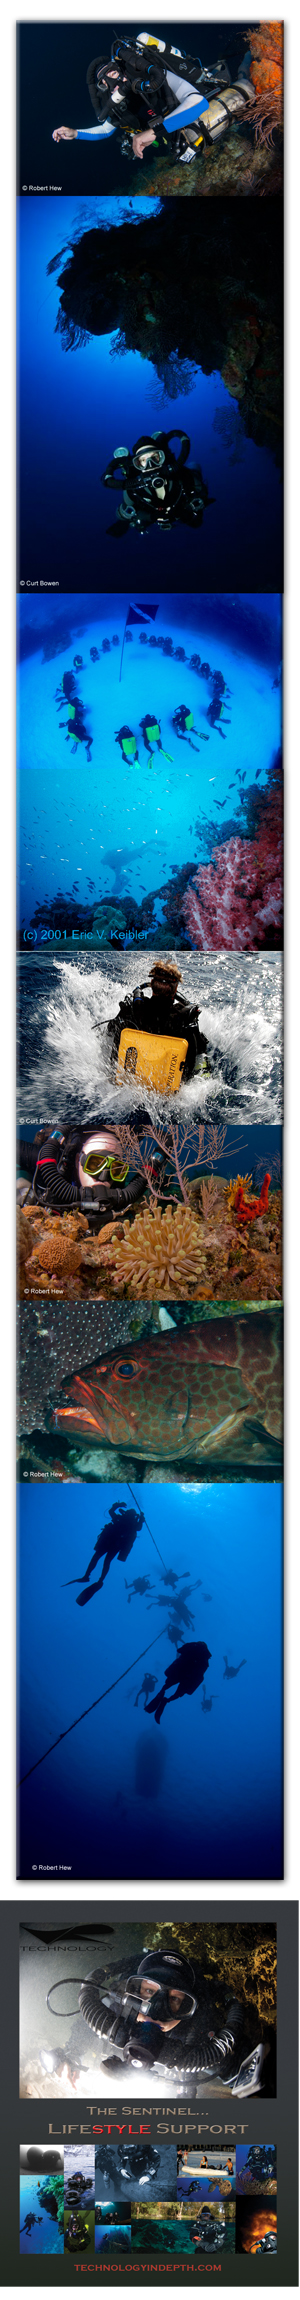 Rebreather Photos